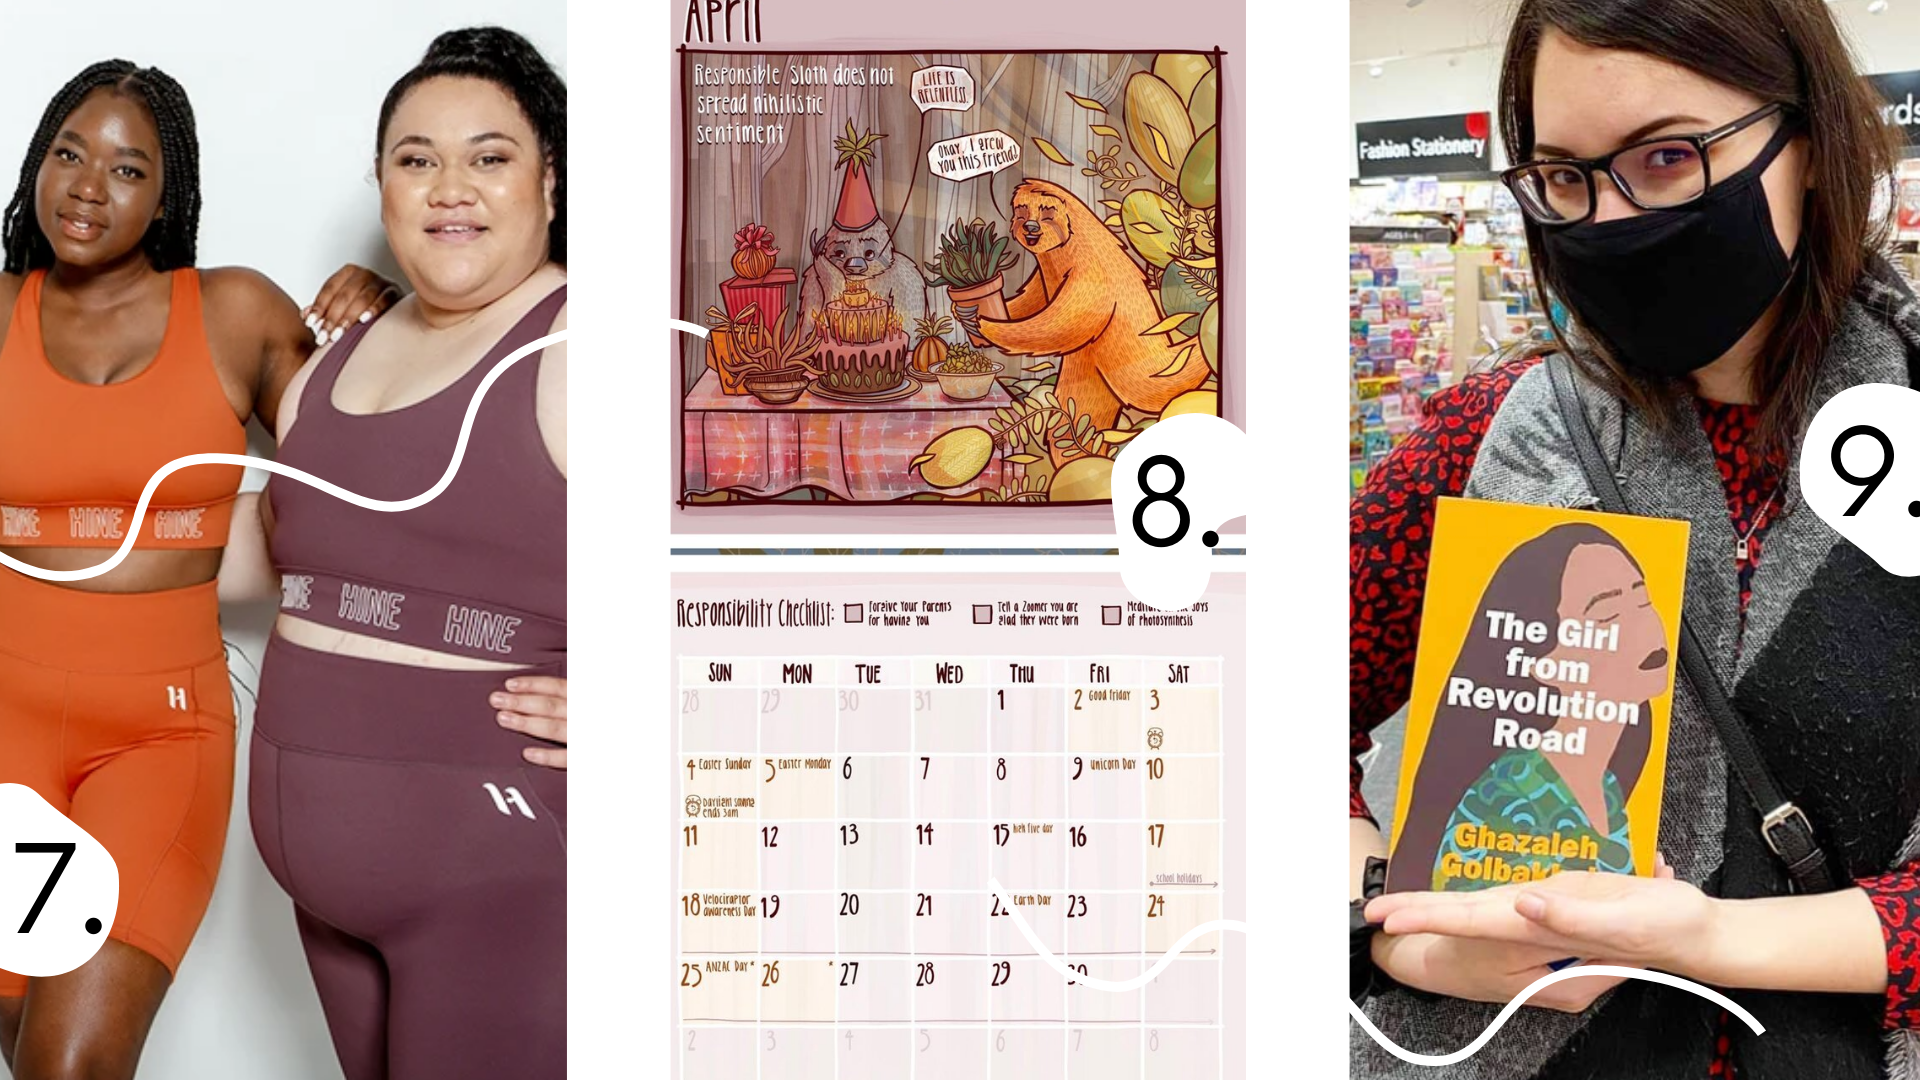 7. Two models wearing Hine activewear top and shorts - one in orange and one in plum, 8. Sloth calendar open on month of April, portrayed is a sloth giving a plant present to another sloth, 9. Elina (co-creator of Storyo) wearing a